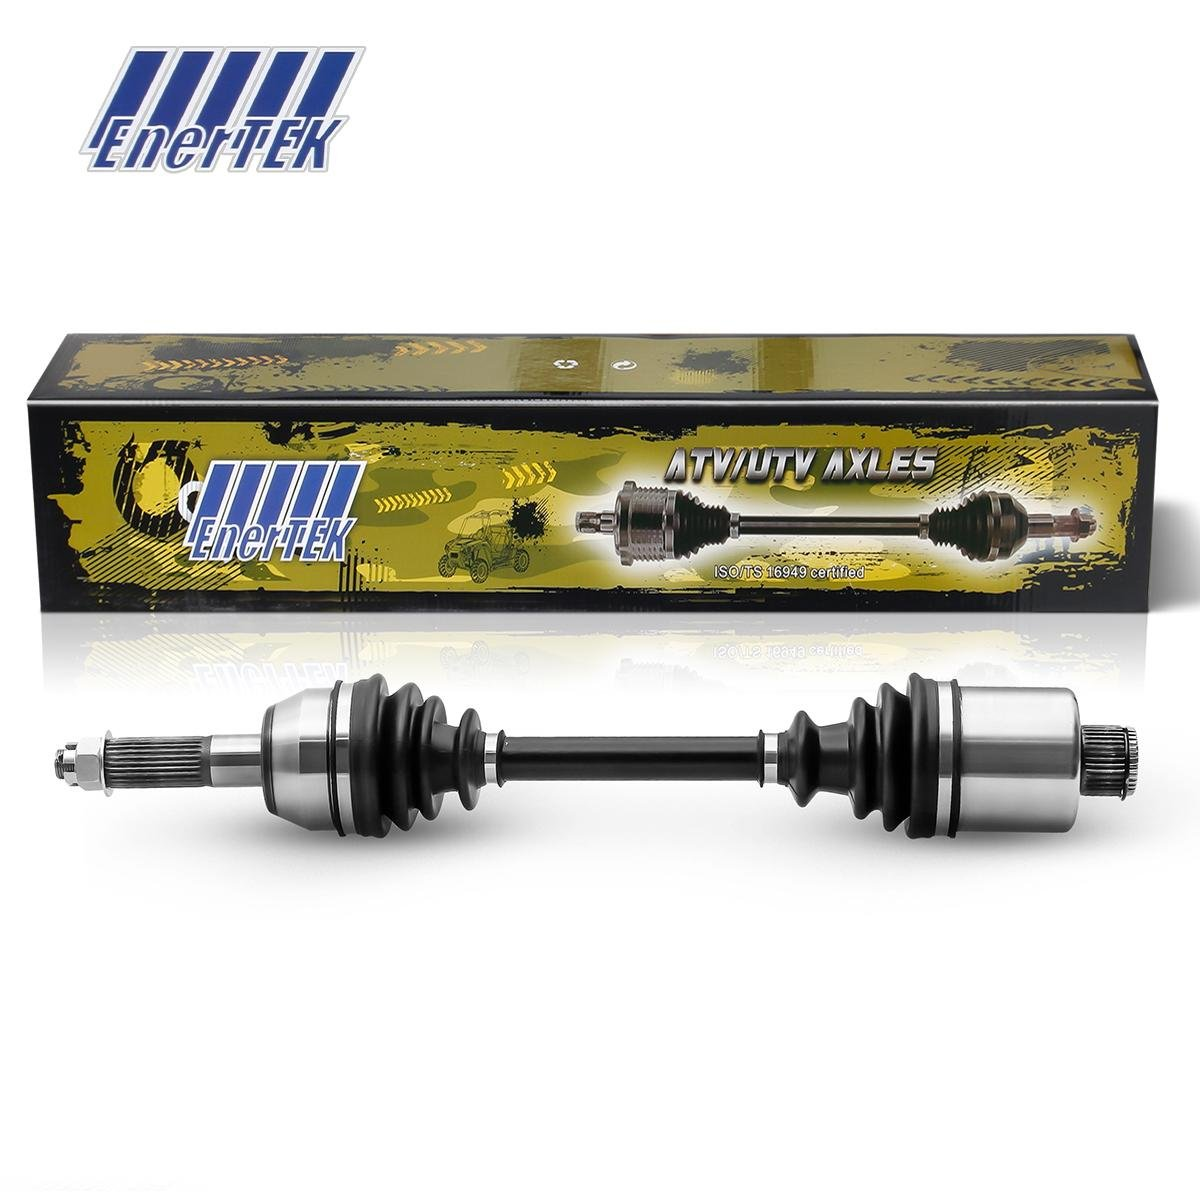 Polaris Sportsman 400 / 450 / 500 / 570 / 600 / 700 / 800 Rear Left/Right CV Axle Drive Shaft Assembly 2003 2004 2005 2006 2007 2008 2009 2010 2011 2012 2013 2014 2015